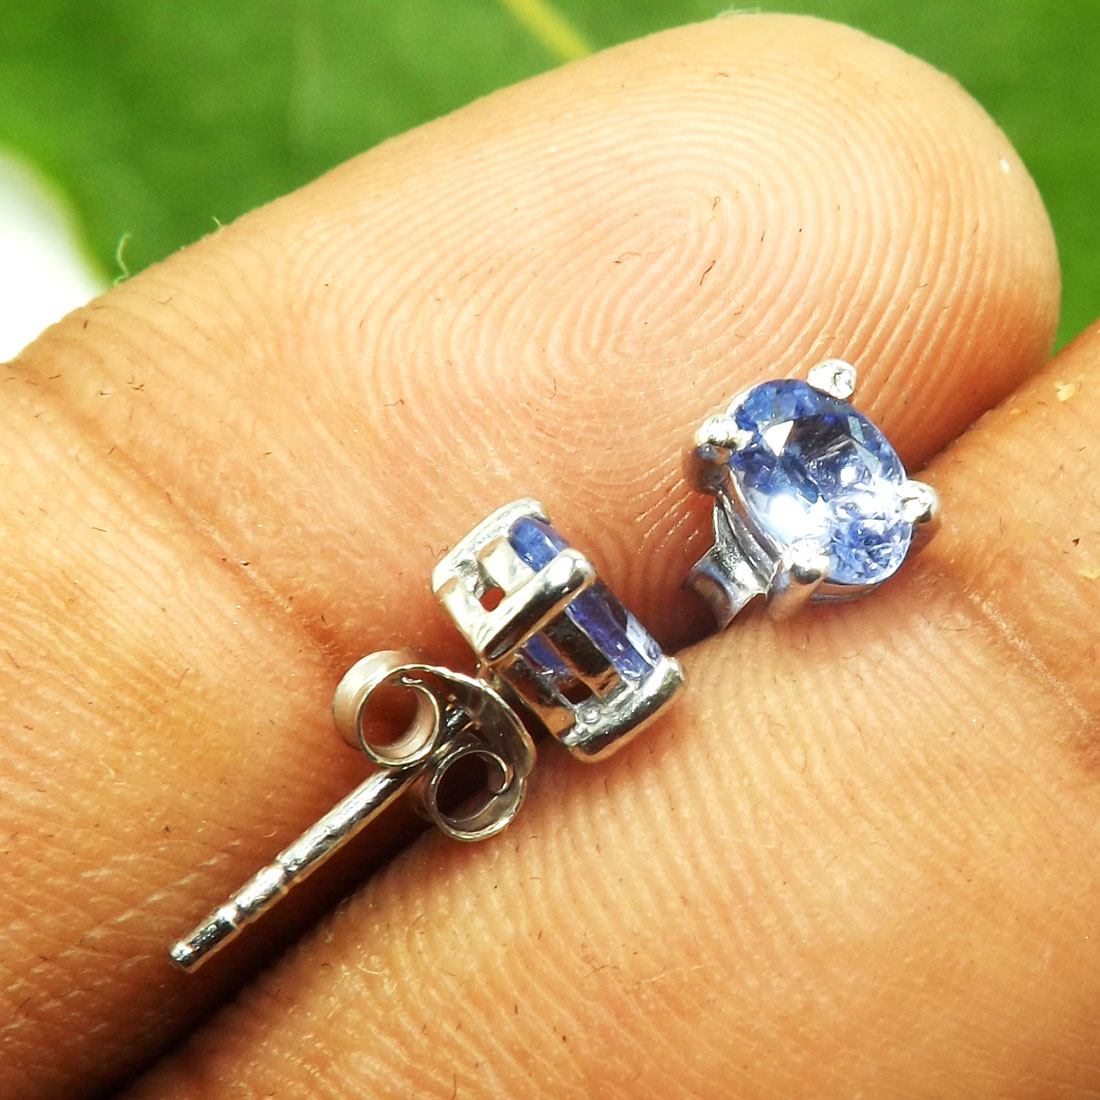 Tanzanite Cut E - SFJ980-4x6 Oval Beautiful Tanzanite 925 Sterling Silver Stud Ear